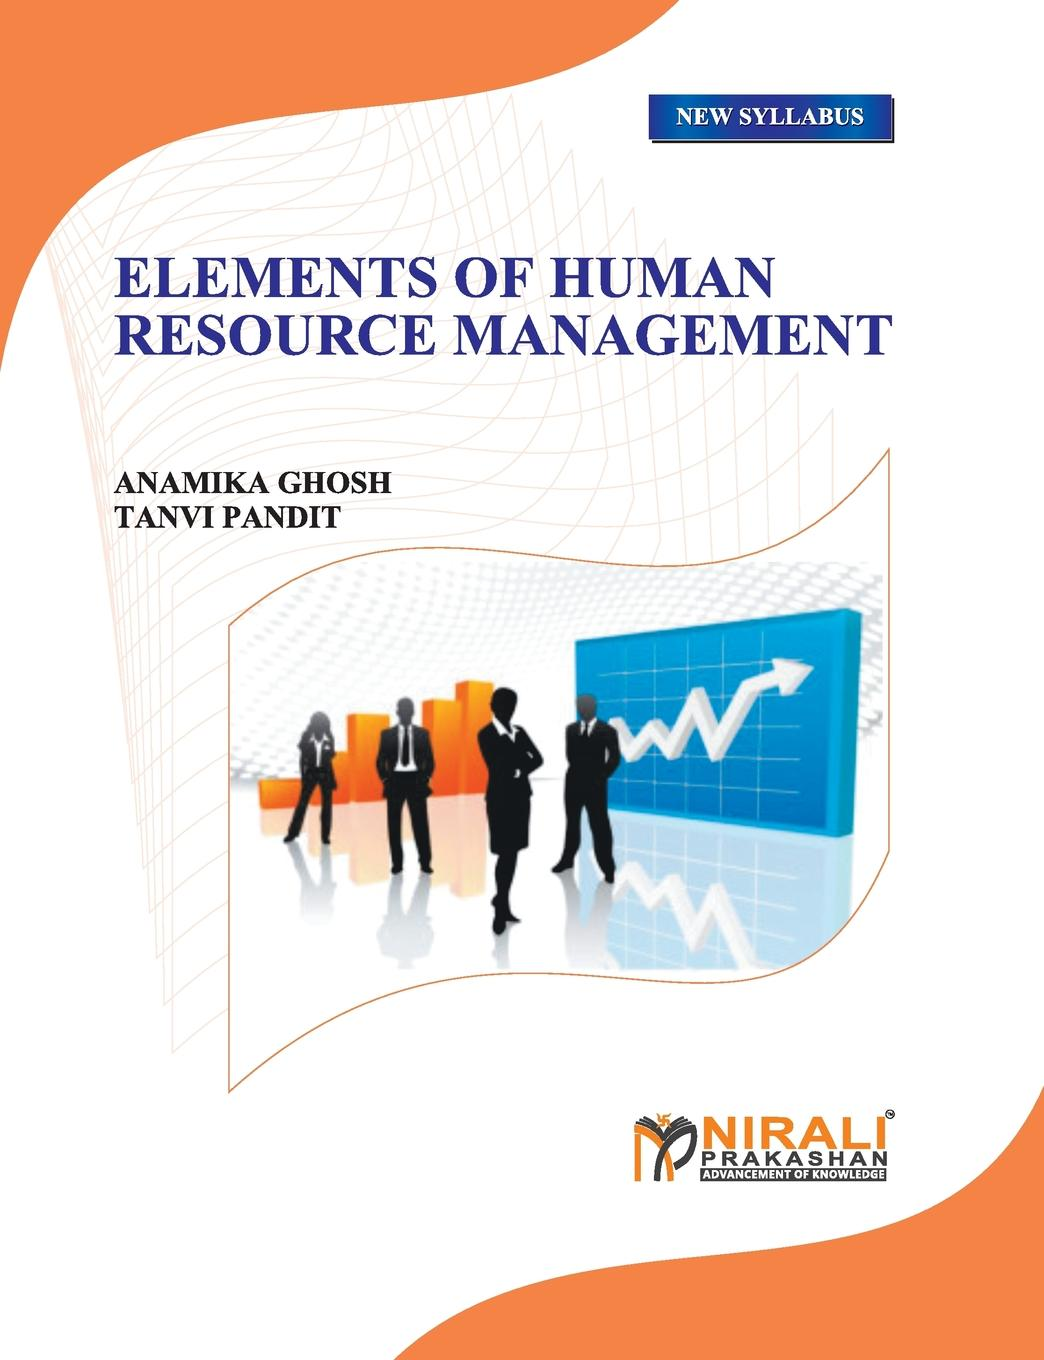 ANAMIKA GHOSH, TANVI PANDIT ELEMENTS OF HUMAN RESOURCE MANAGEMENT rd robinson high–level manpower in economical development – the turkish case